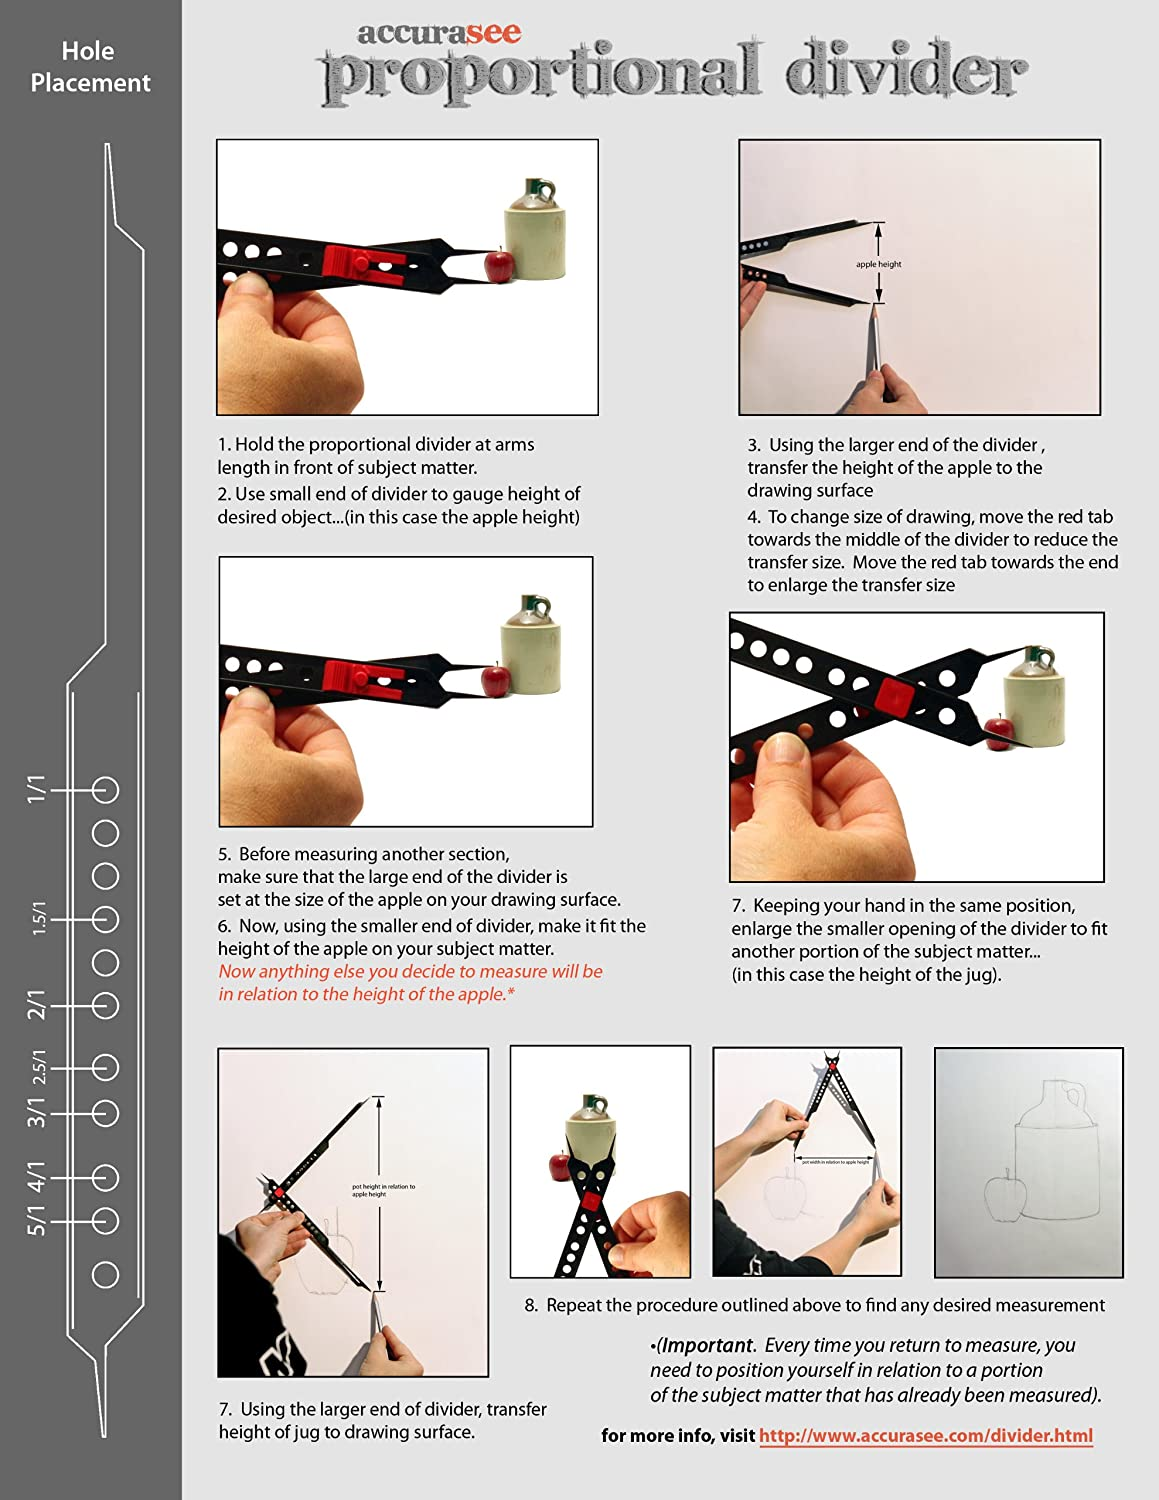 amazoncom accurasee artist proportional divider proportion tools office products - Online Drawing Tool With Measurements